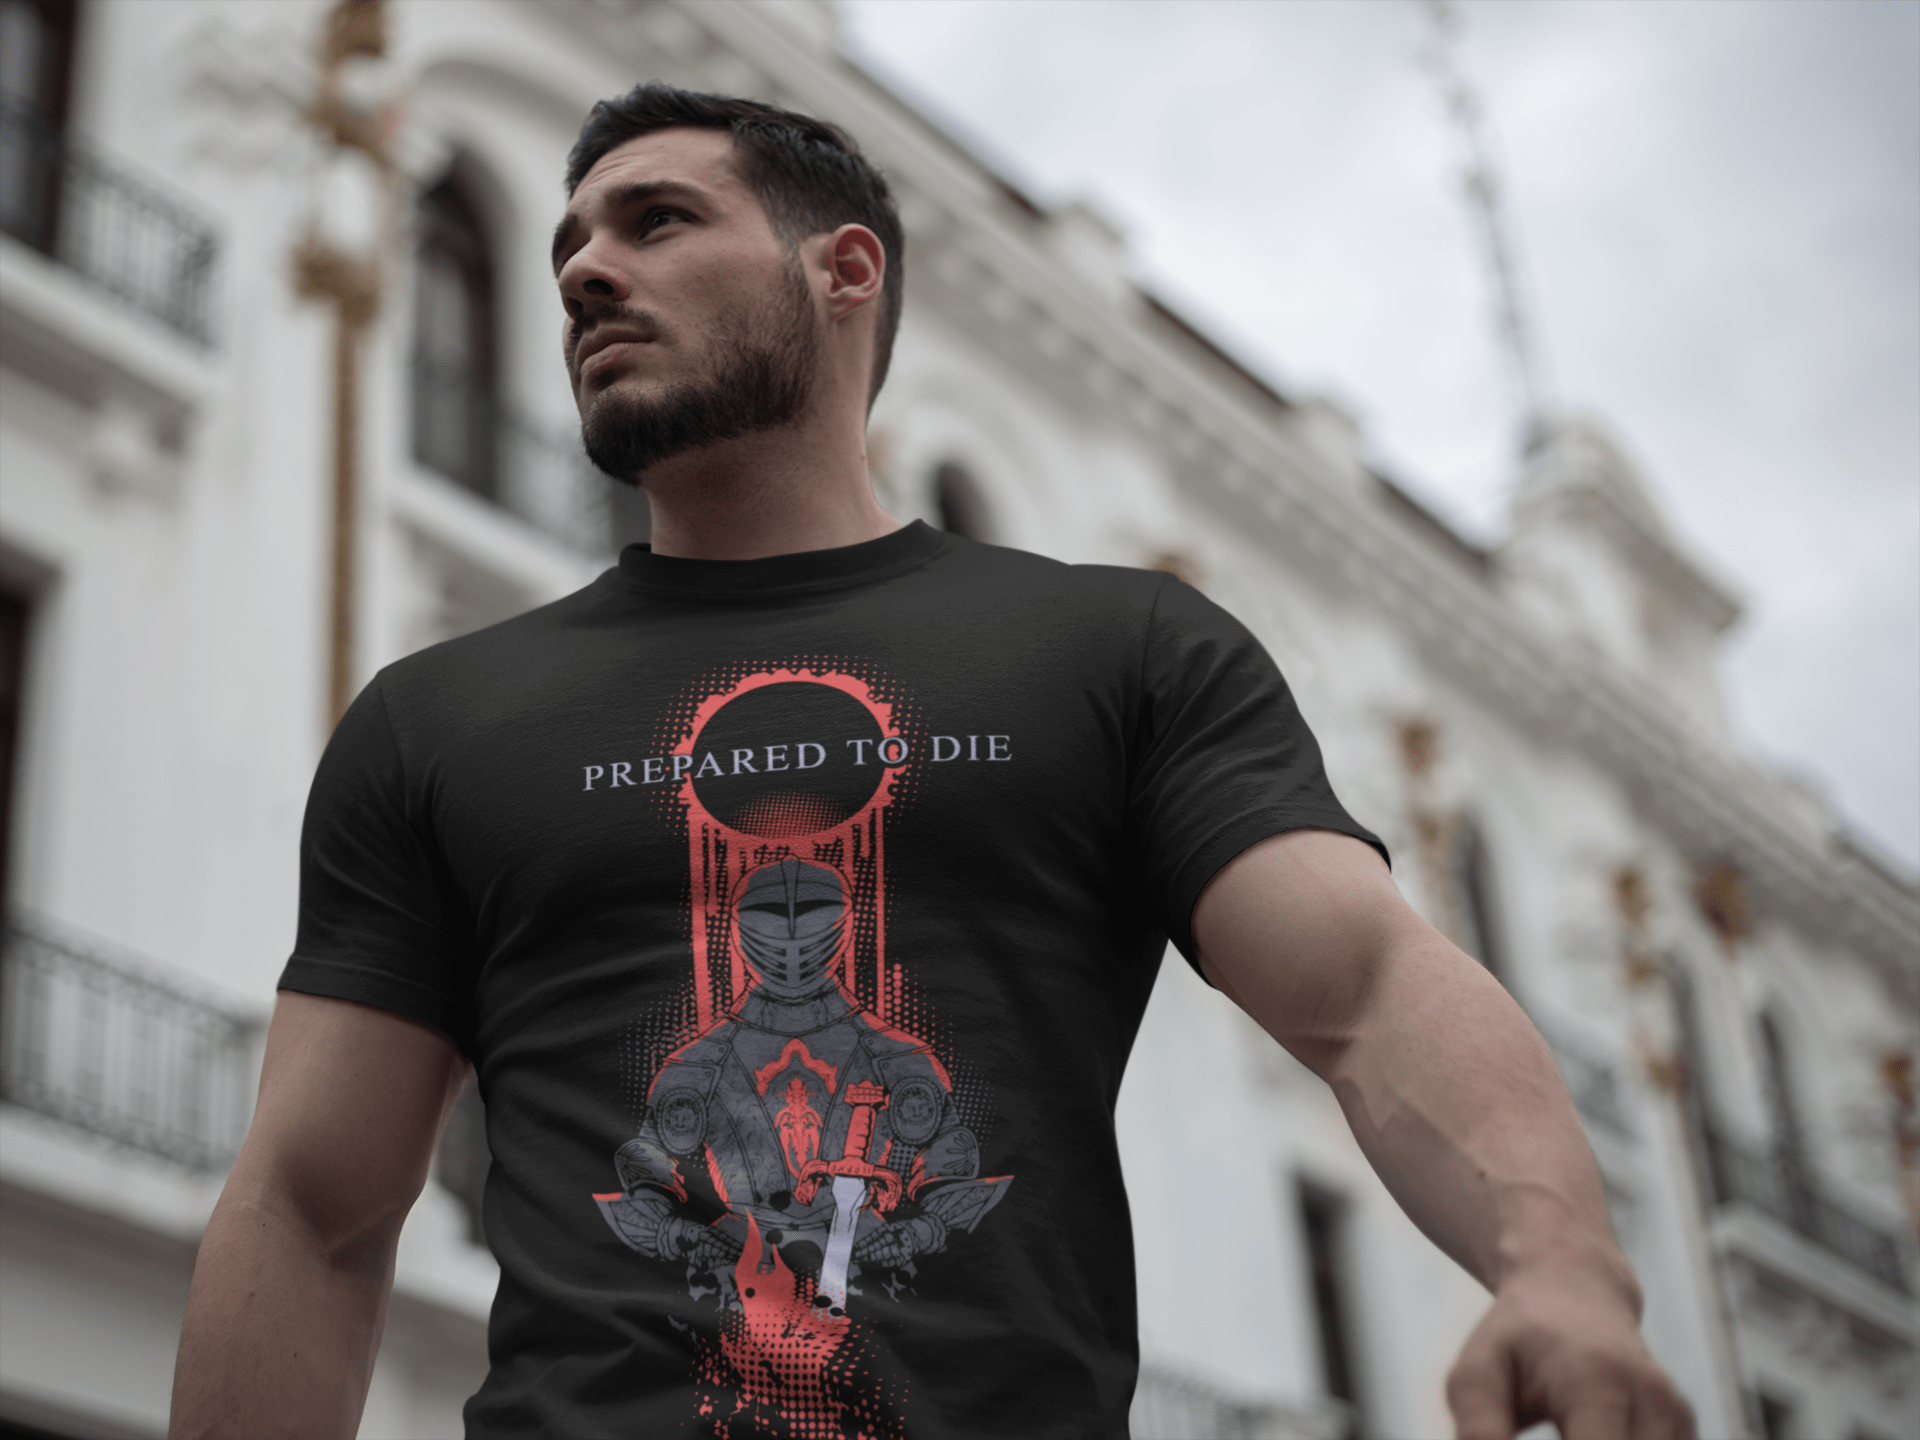 2018 Latest Trends in T-shirt Designs placeit 10